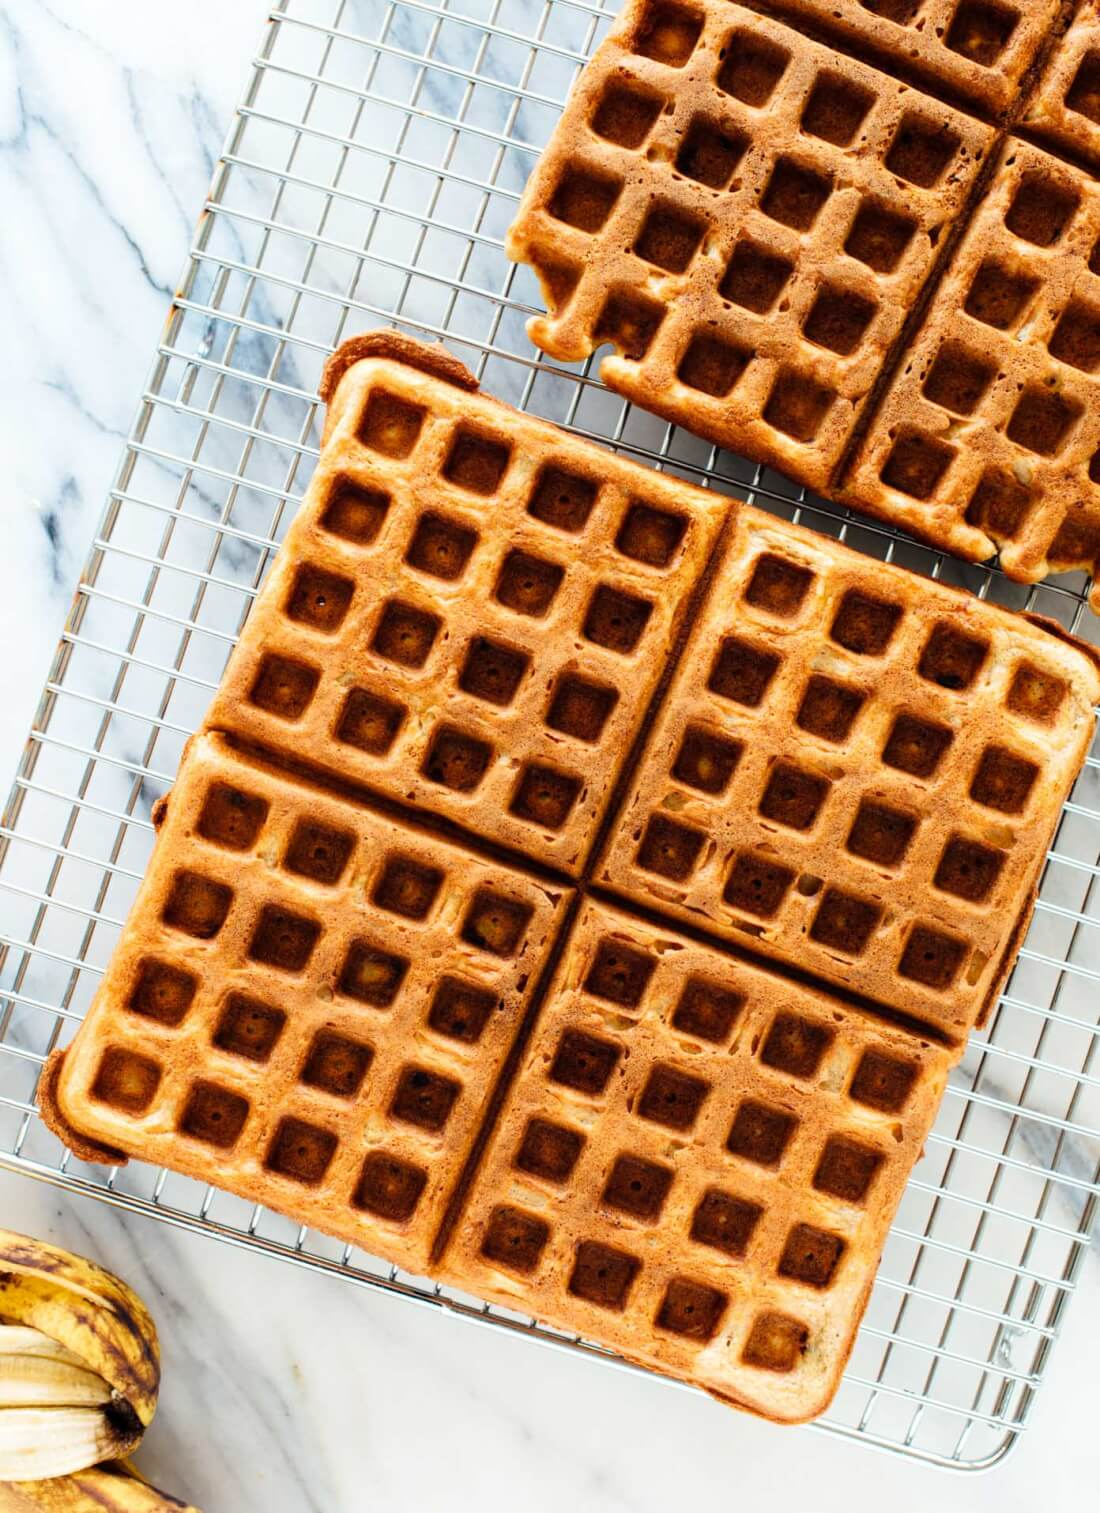 Simple, delicious gluten-free banana waffles! Everyone will love these wholesome waffles. cookieandkate.com